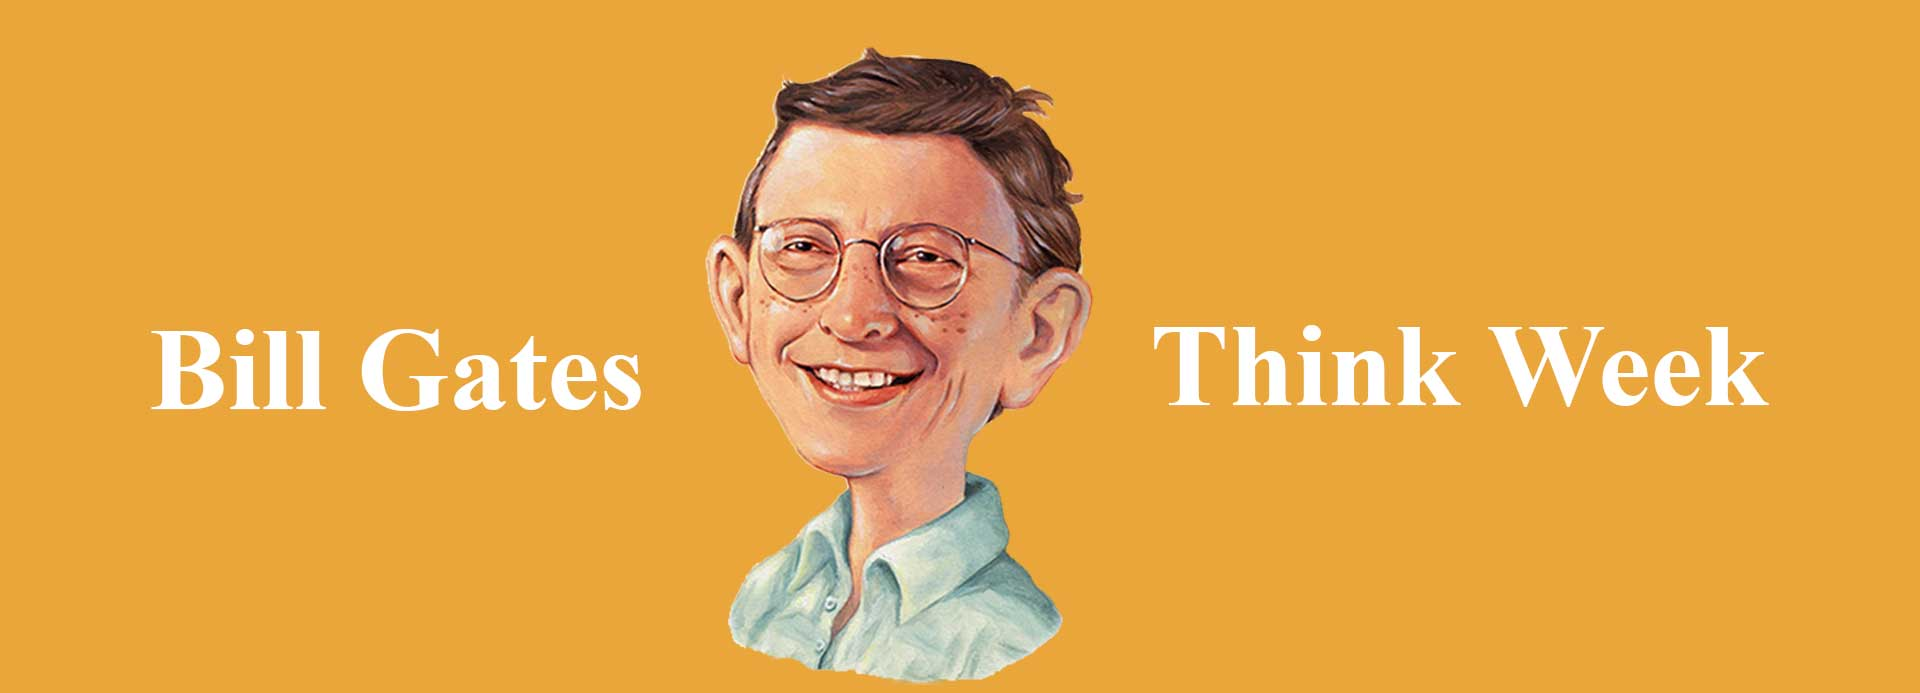 Bill Gates Think Week